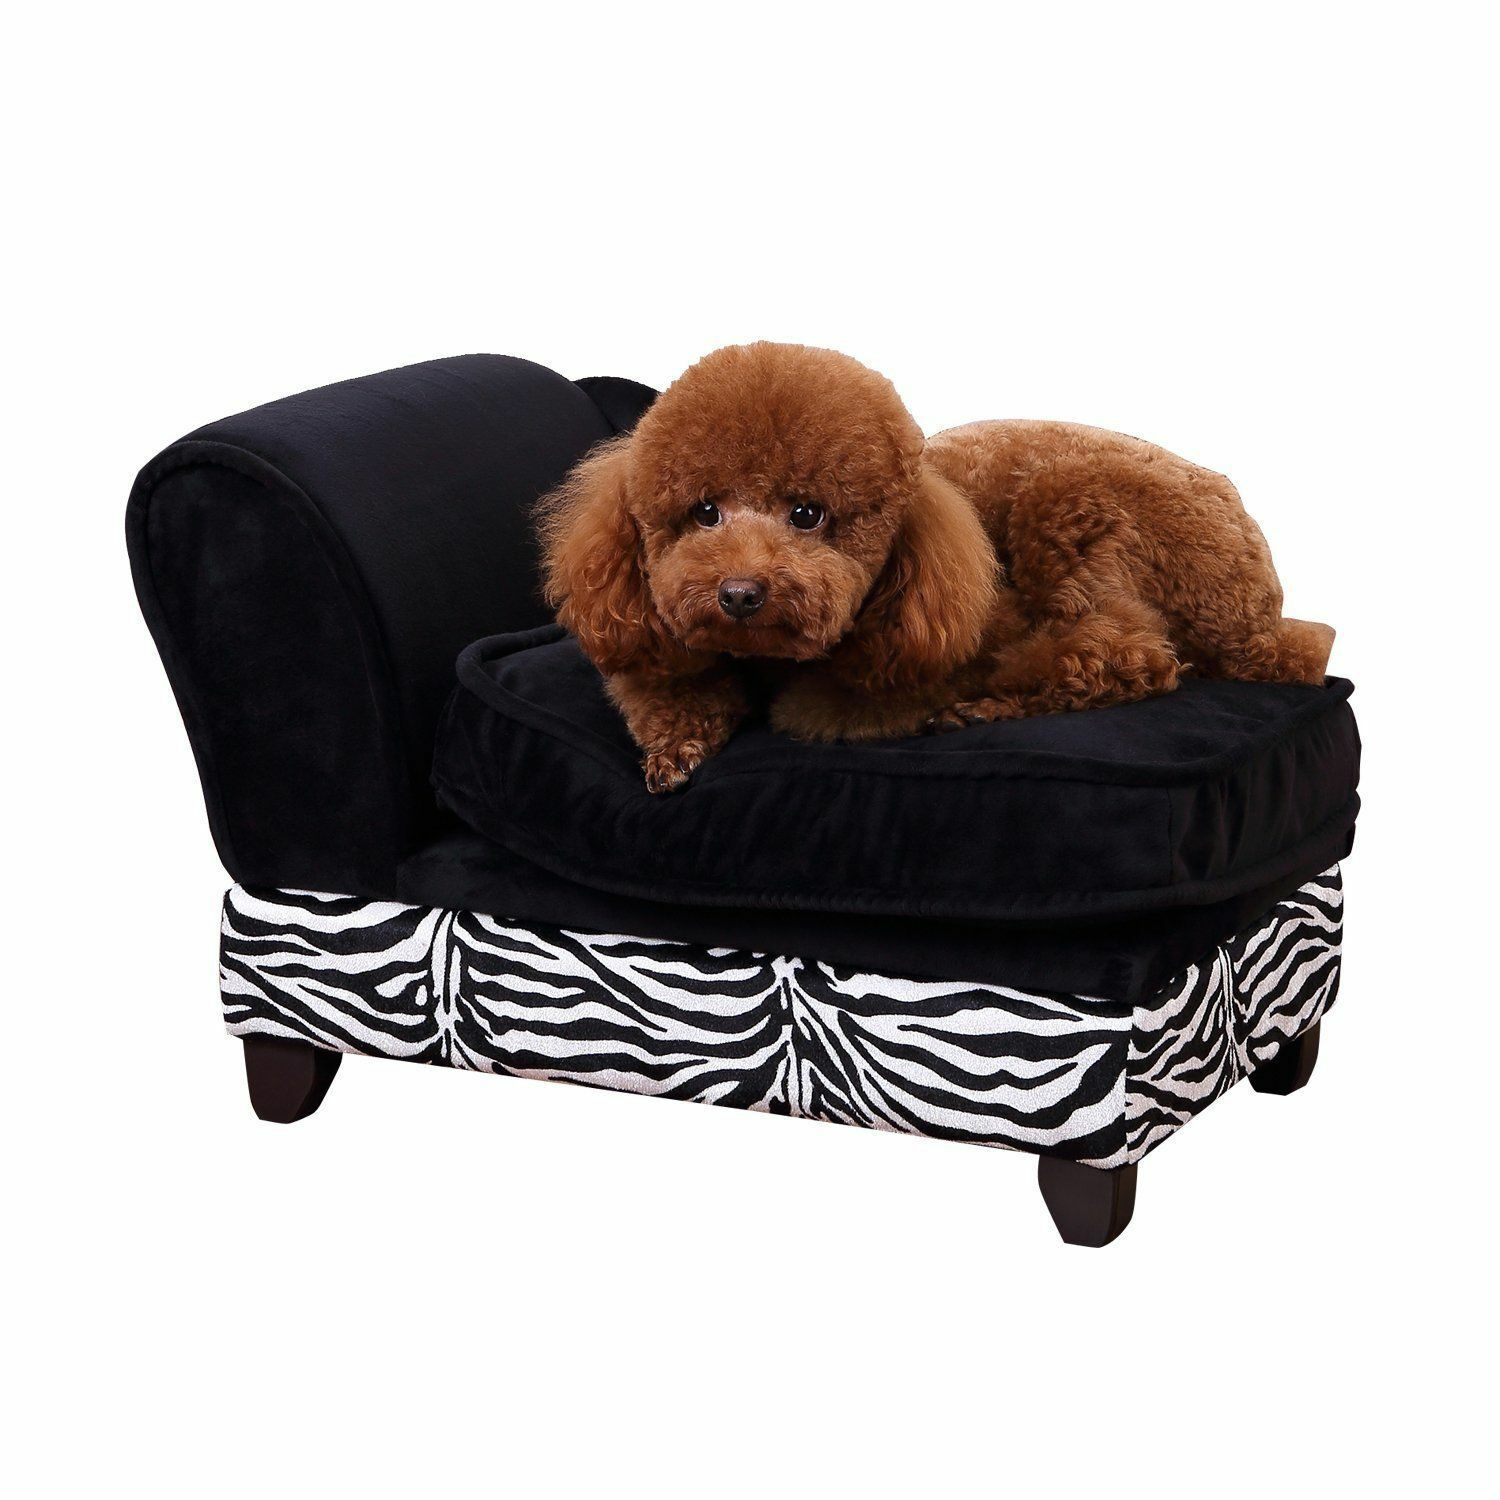 Swell Pawhut Luxury Pet Sofa Storage Dog Bed Chaise Lounge Puppy Cat Kitten Lounger Andrewgaddart Wooden Chair Designs For Living Room Andrewgaddartcom